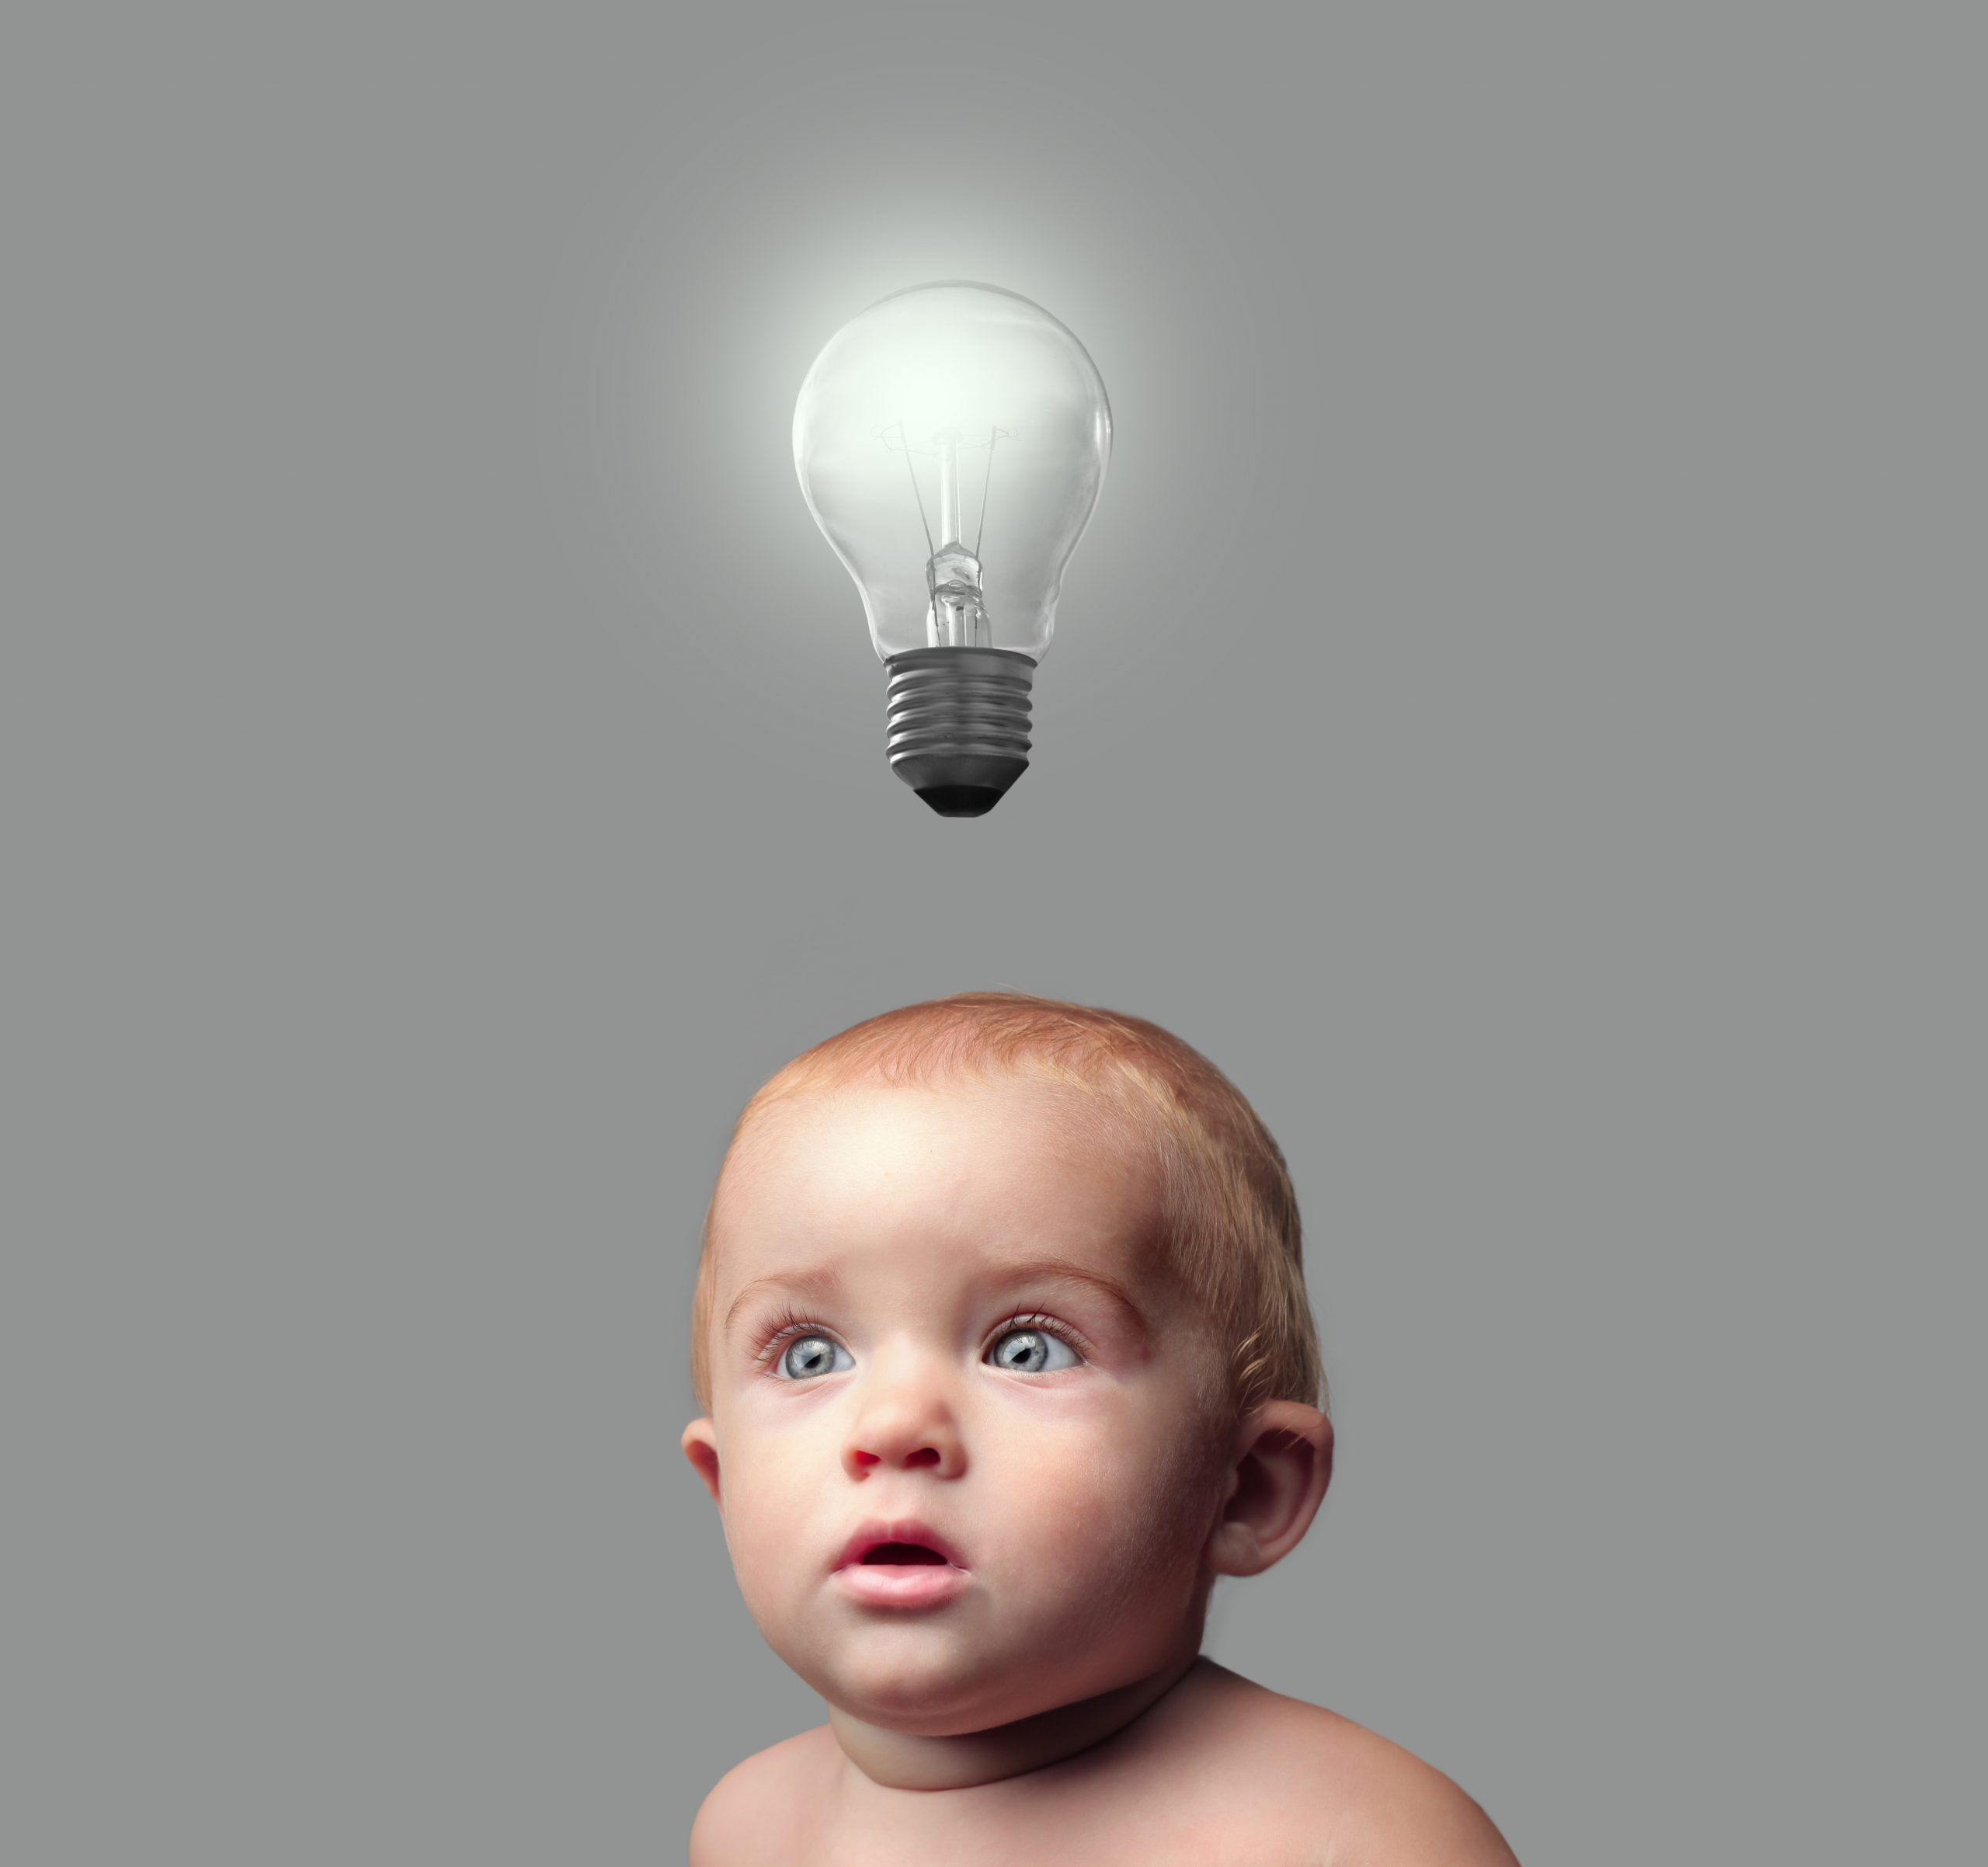 IQ Tests for Babies? What You Need to Know